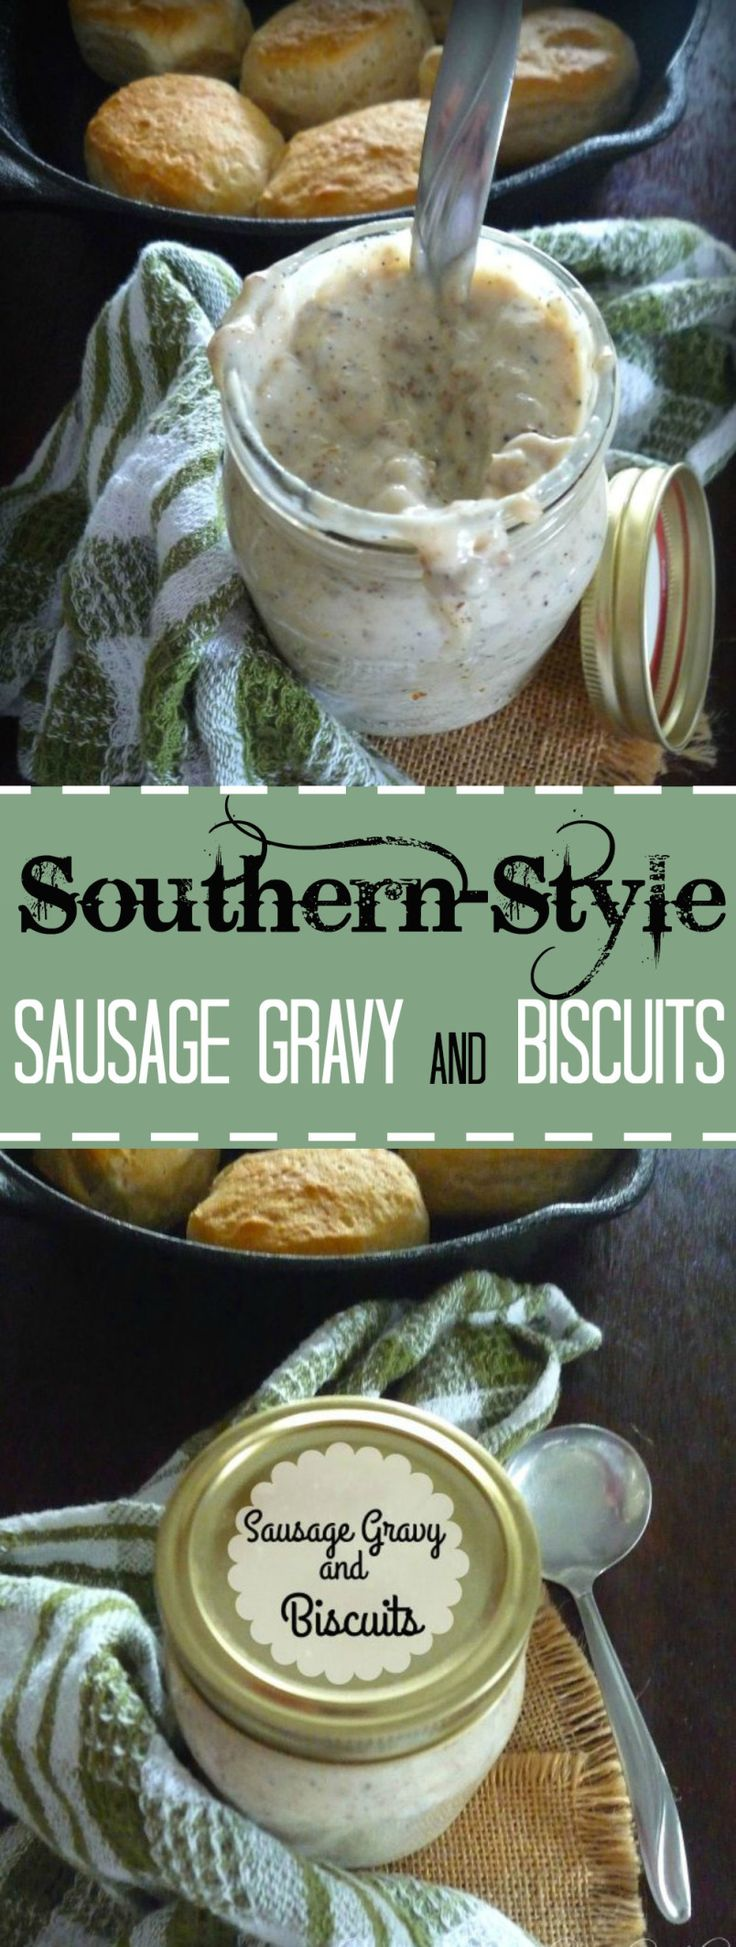 Creamy delicious heaven over biscuits is the phrase that comes to mind when I think of my mama's Southern Sausage Gravy and Biscuits; I can not begin to tell you in words how amazingly good her Southern Sausage Gravy is over her homemade biscuits. I might be a little biased when it comes to my mama and her cooking, but I am telling your that sausage gravy is lip smacking good.